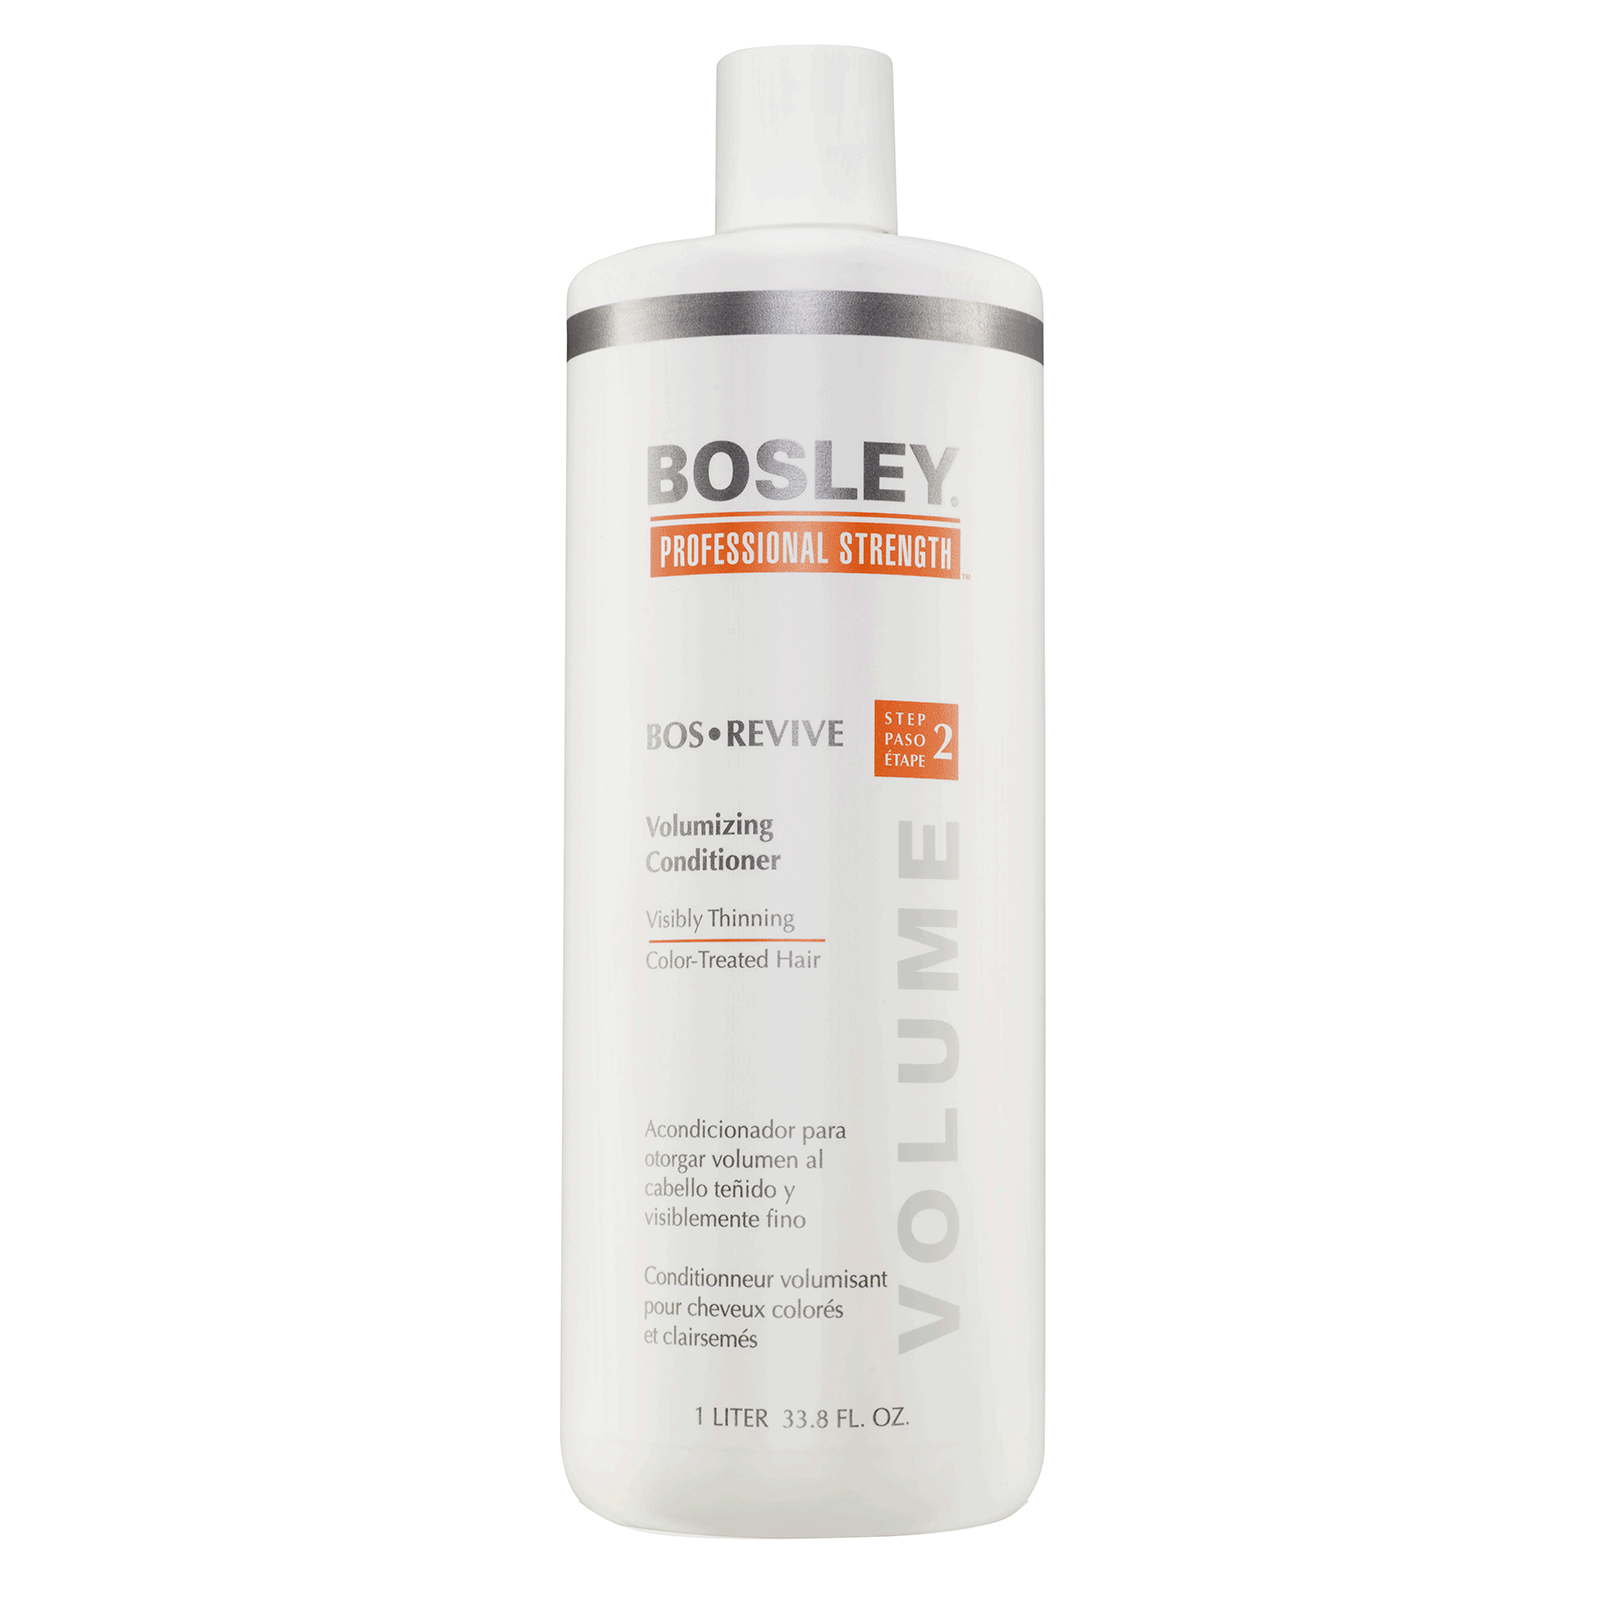 BosRevive Volumizing Conditioner for Color Treated Hair